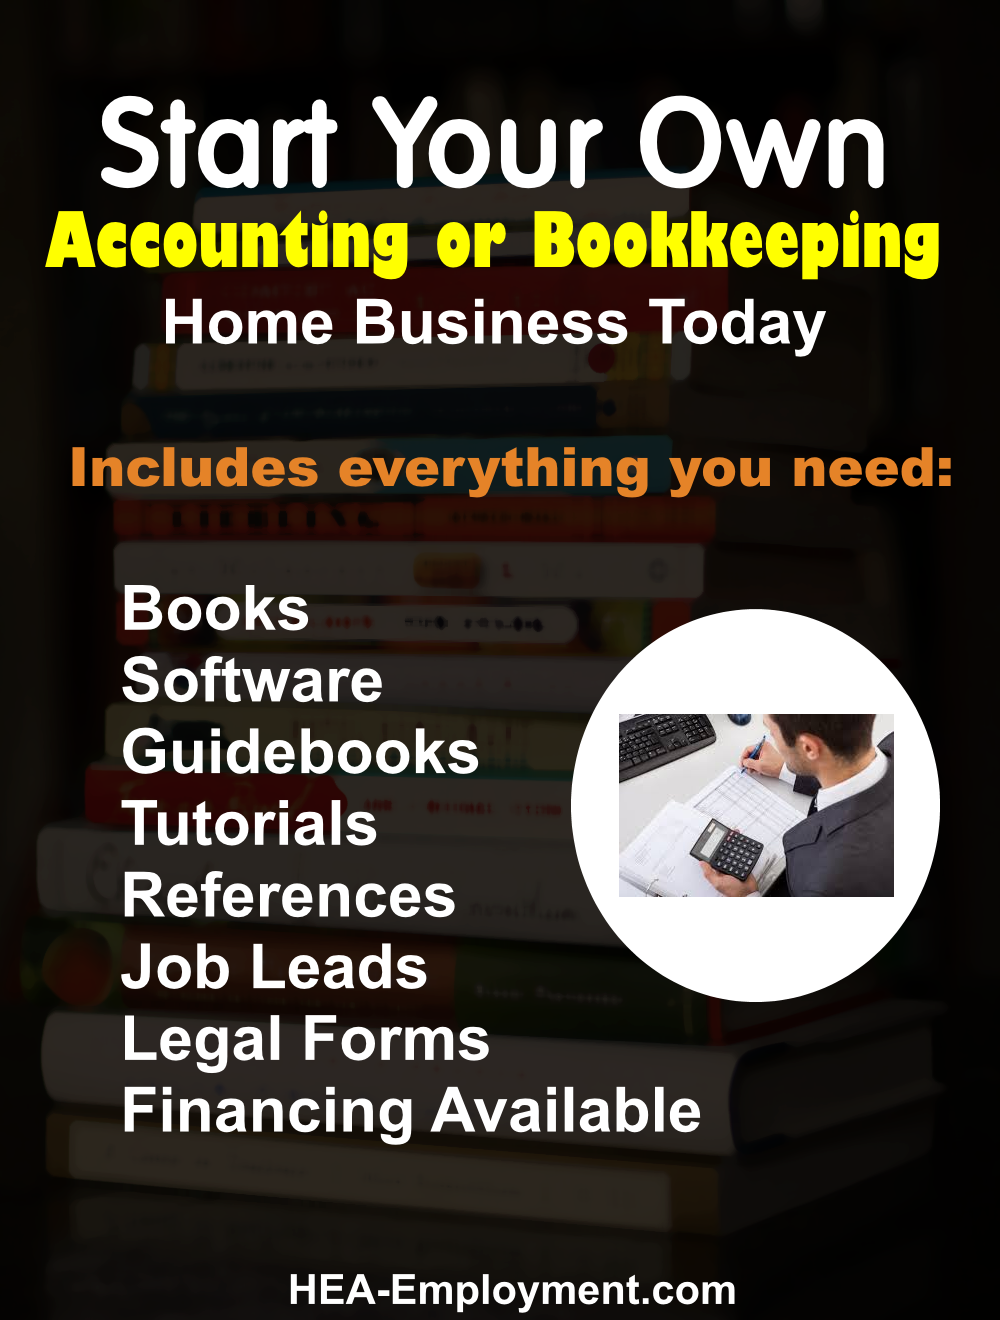 Start your own accounting and bookkeeping legitimate home based business. Fully equipped home business package with everything you need to get started. Productivity software, tutorials, guidebooks, references, manuals, tax advice and legal forms are included with each kit. Be your own boss!